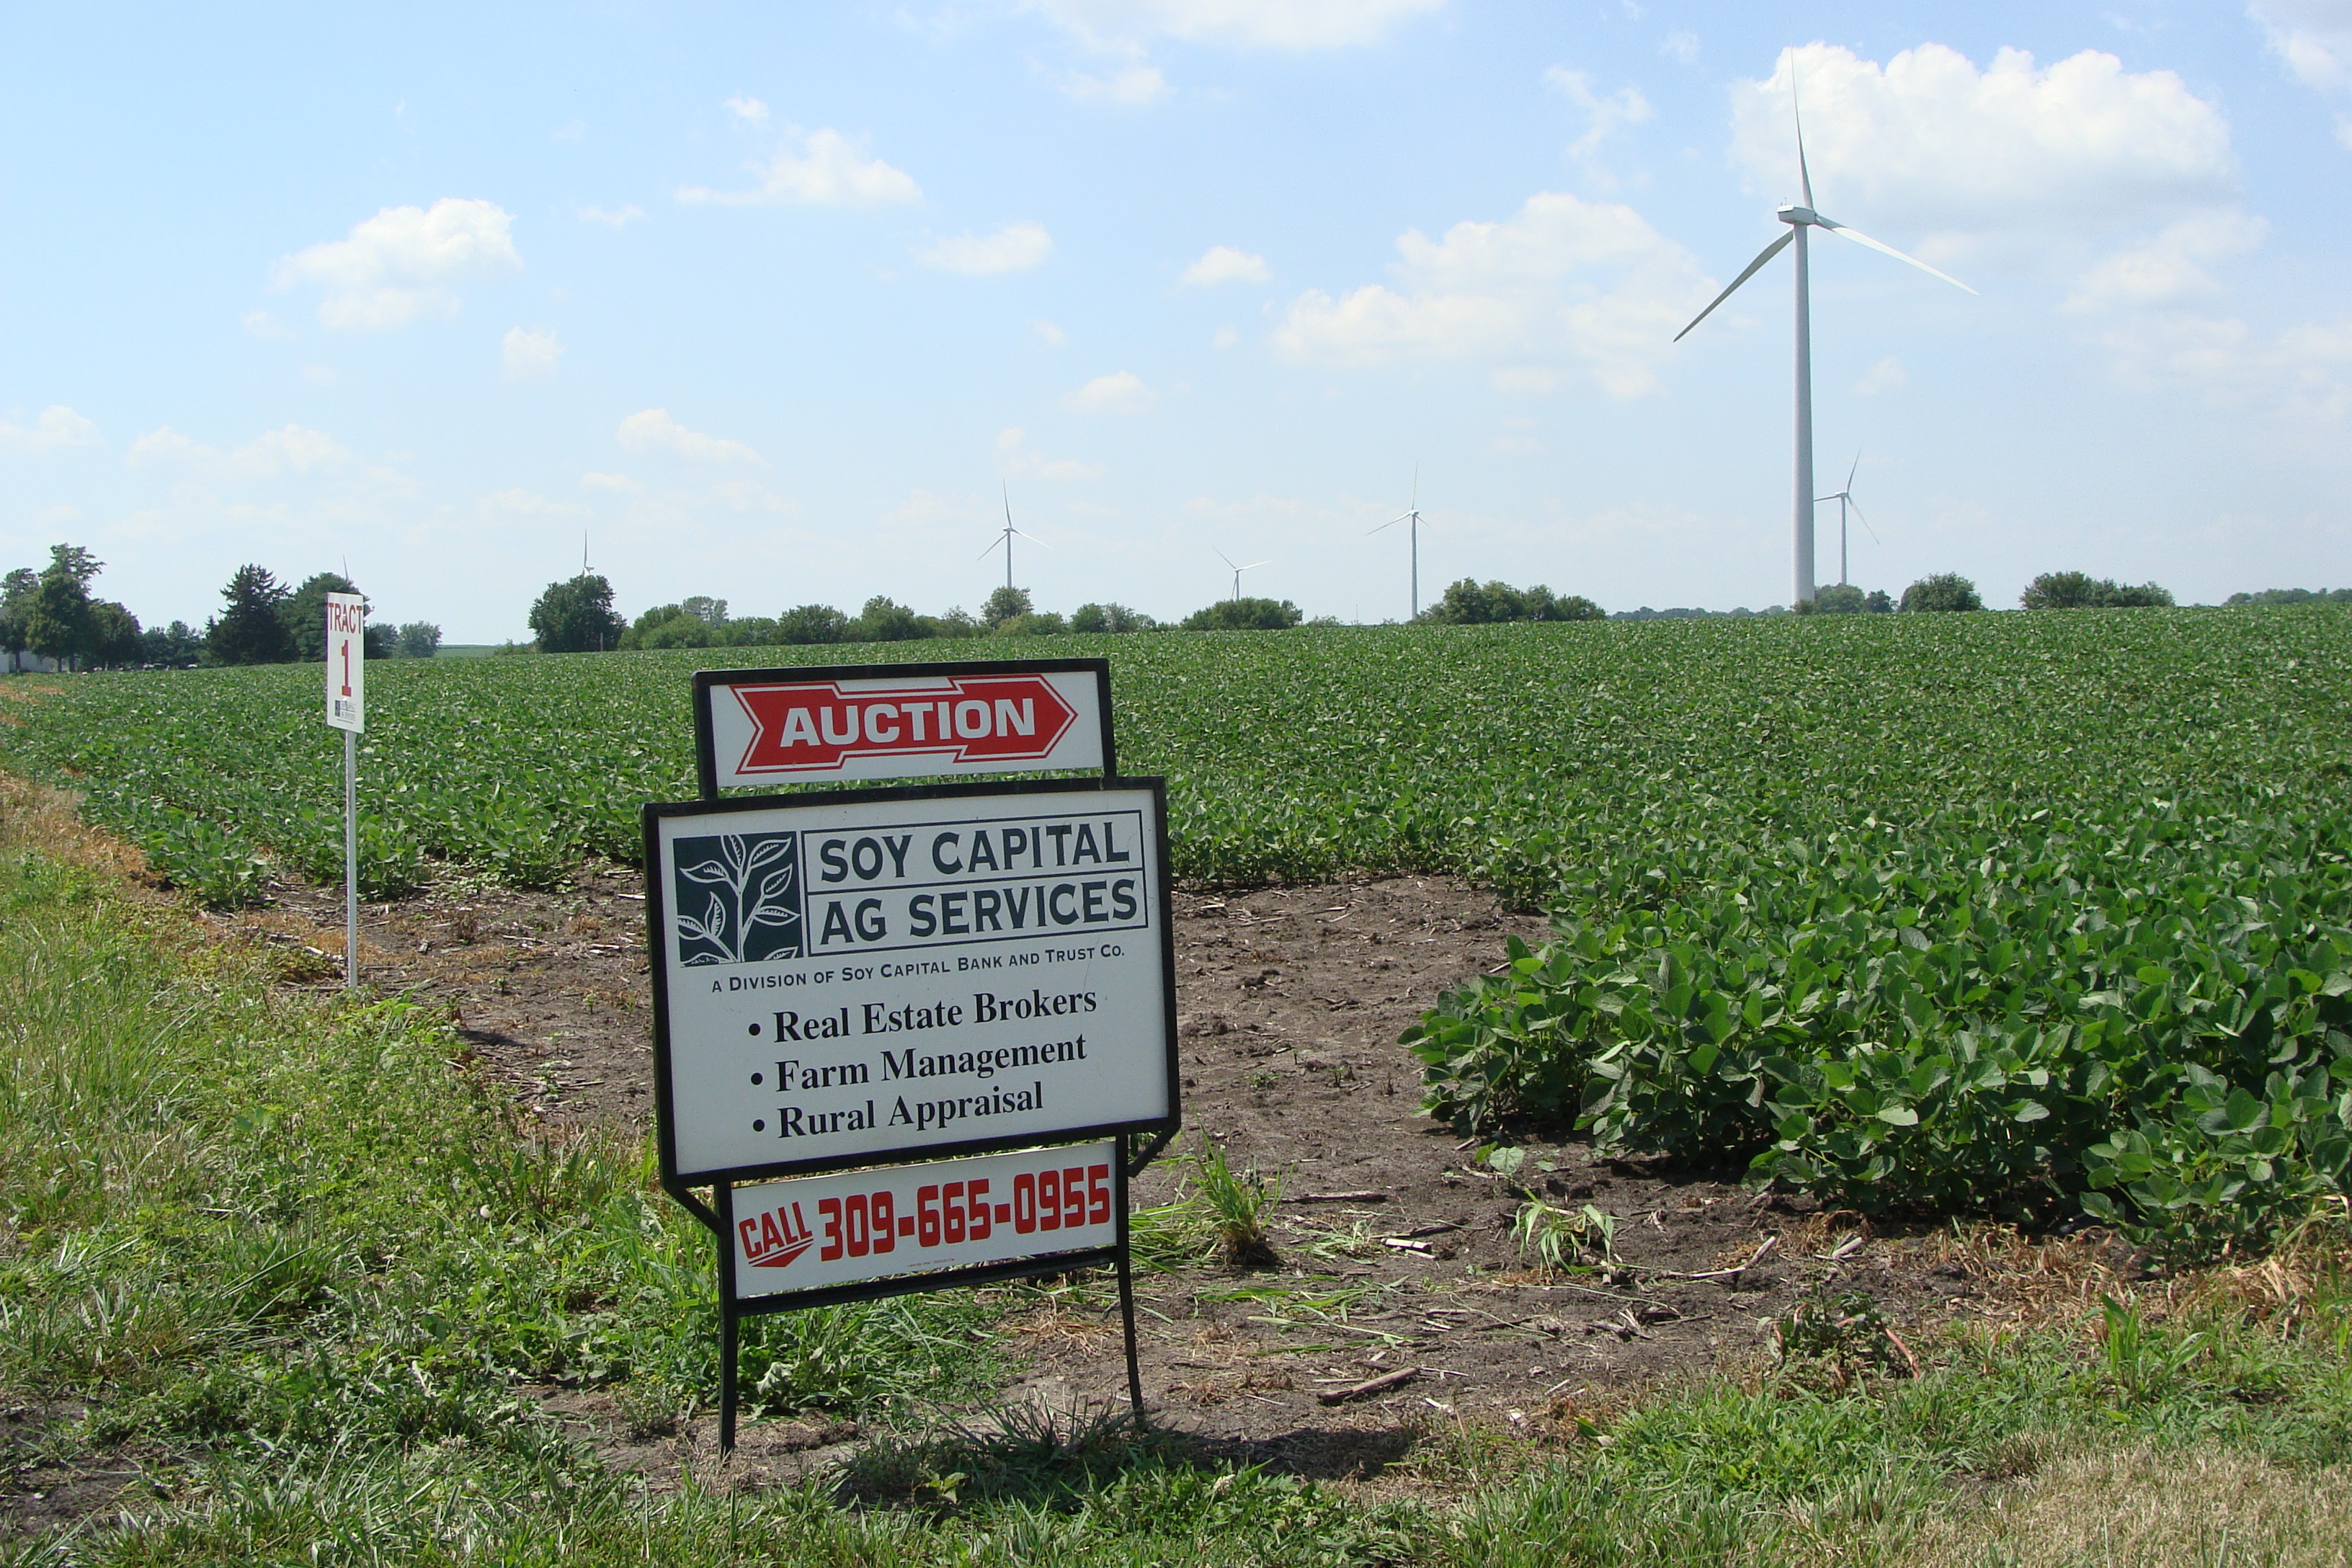 Picture of Mitchell Auction Sign